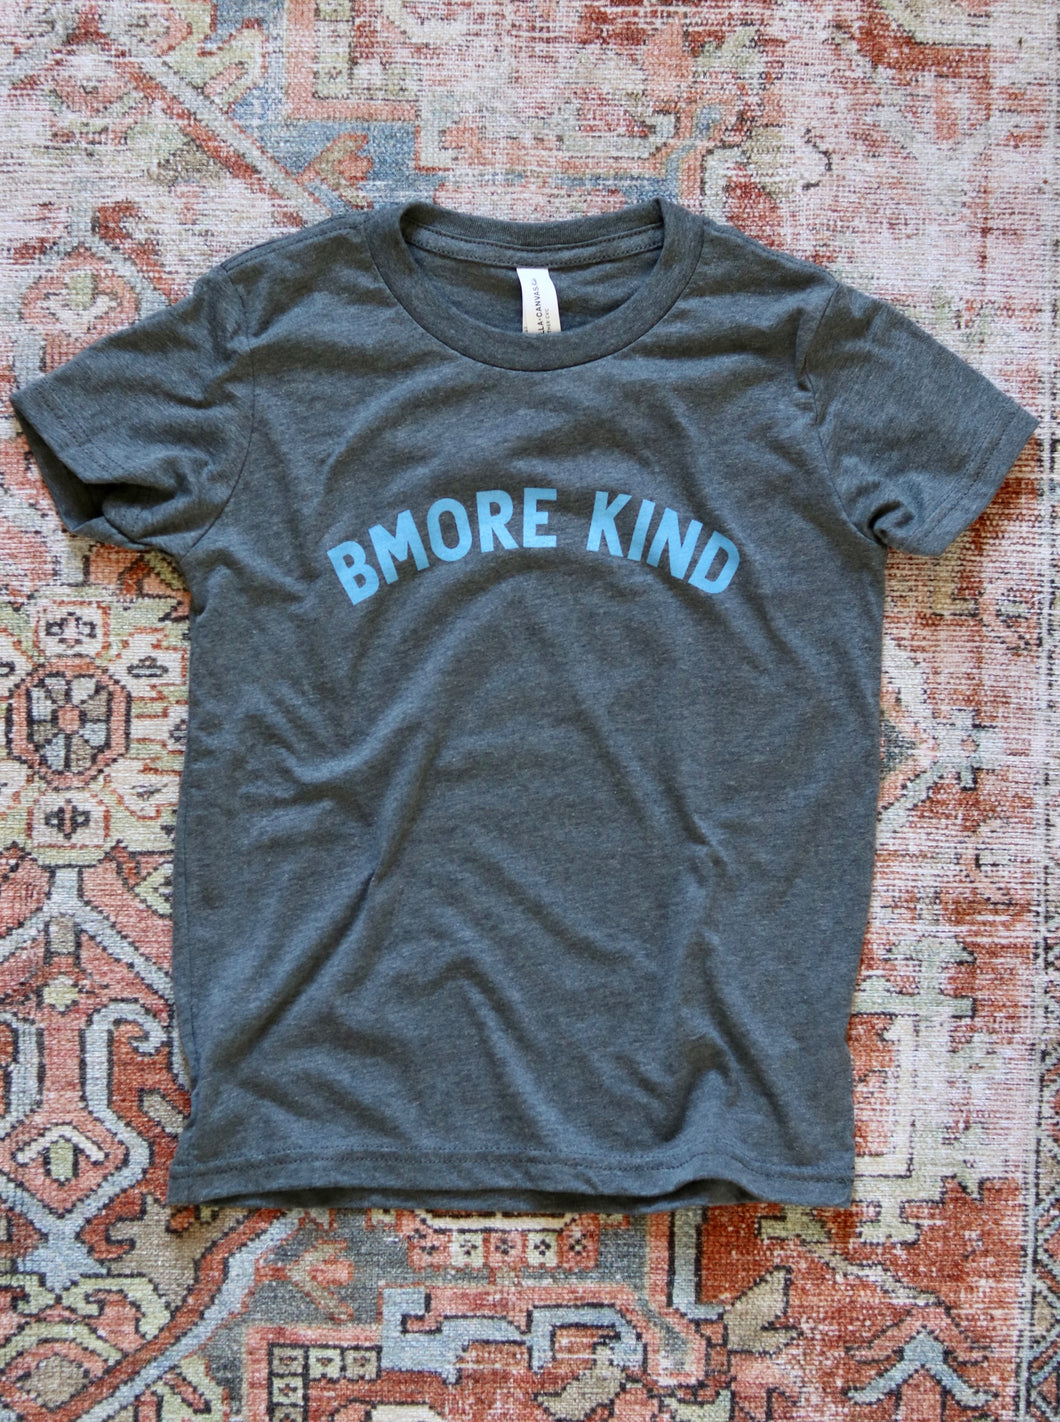 Bmore Kind Youth T-Shirt — Blue